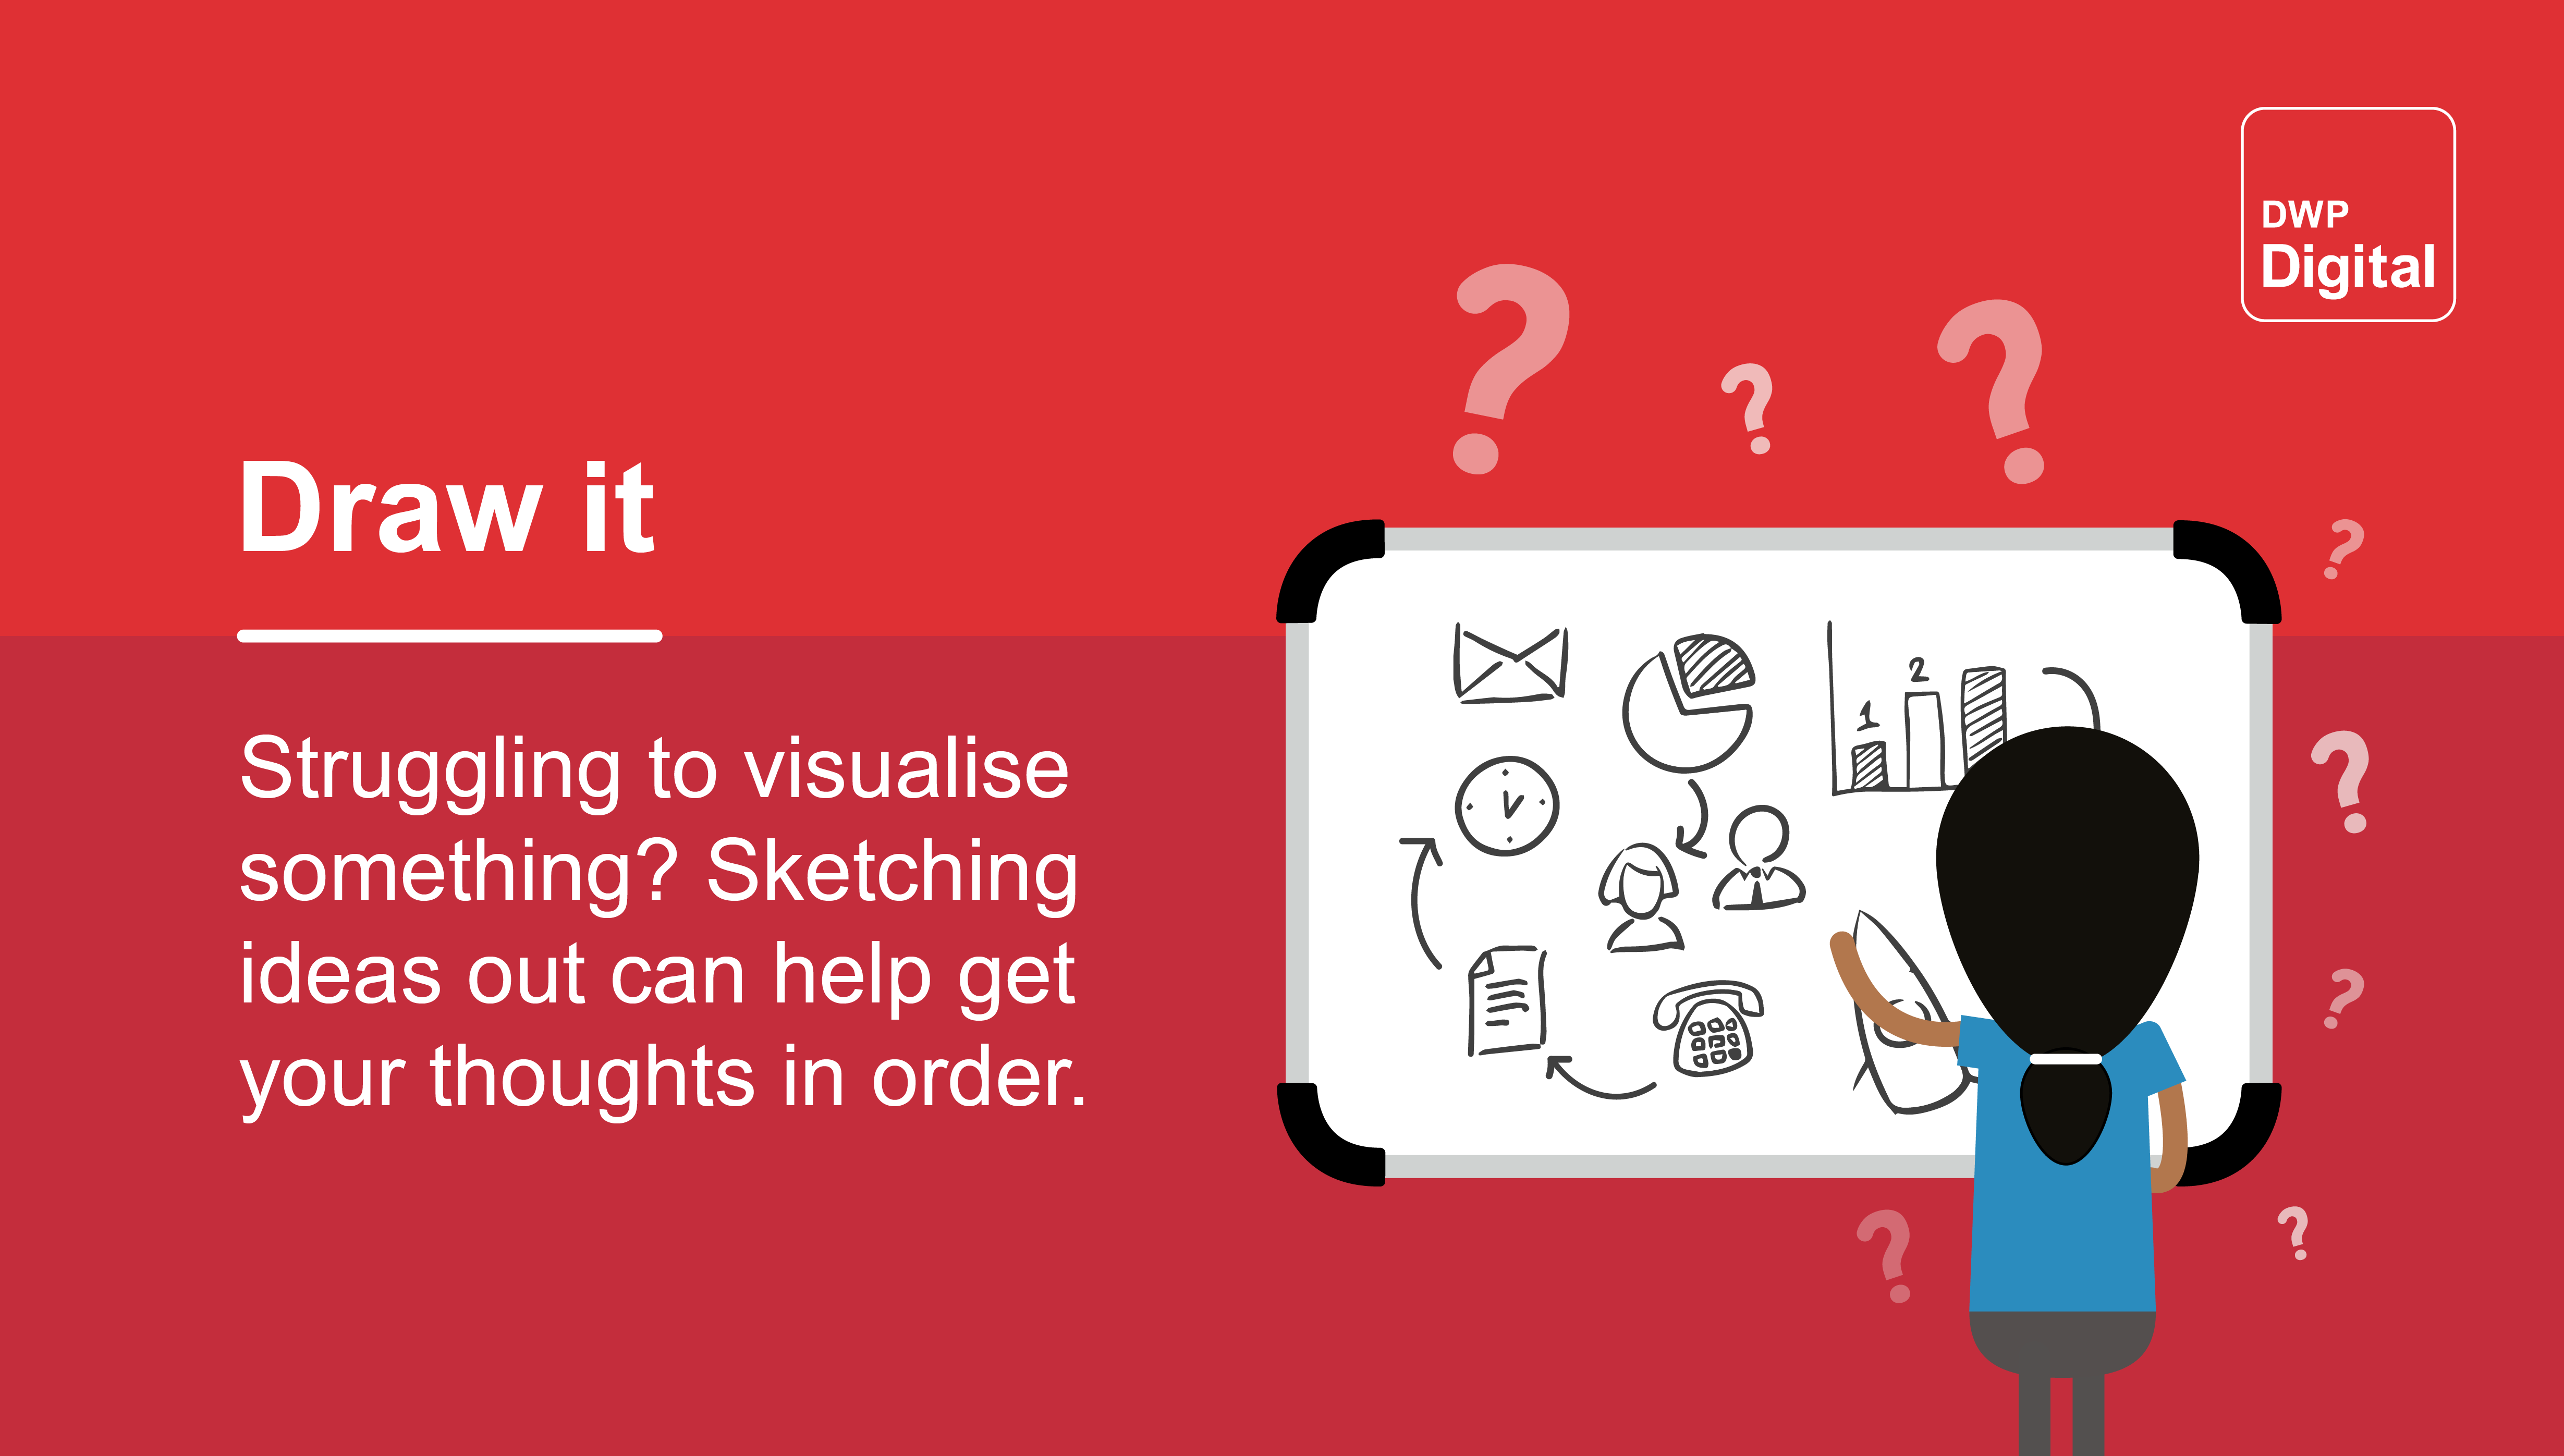 """Graphic showing a person sketching stick figures and graphs on a large whiteboard, with the text: """"Struggling to visualise something? Sketching ideas can help get your thoughts in order."""""""